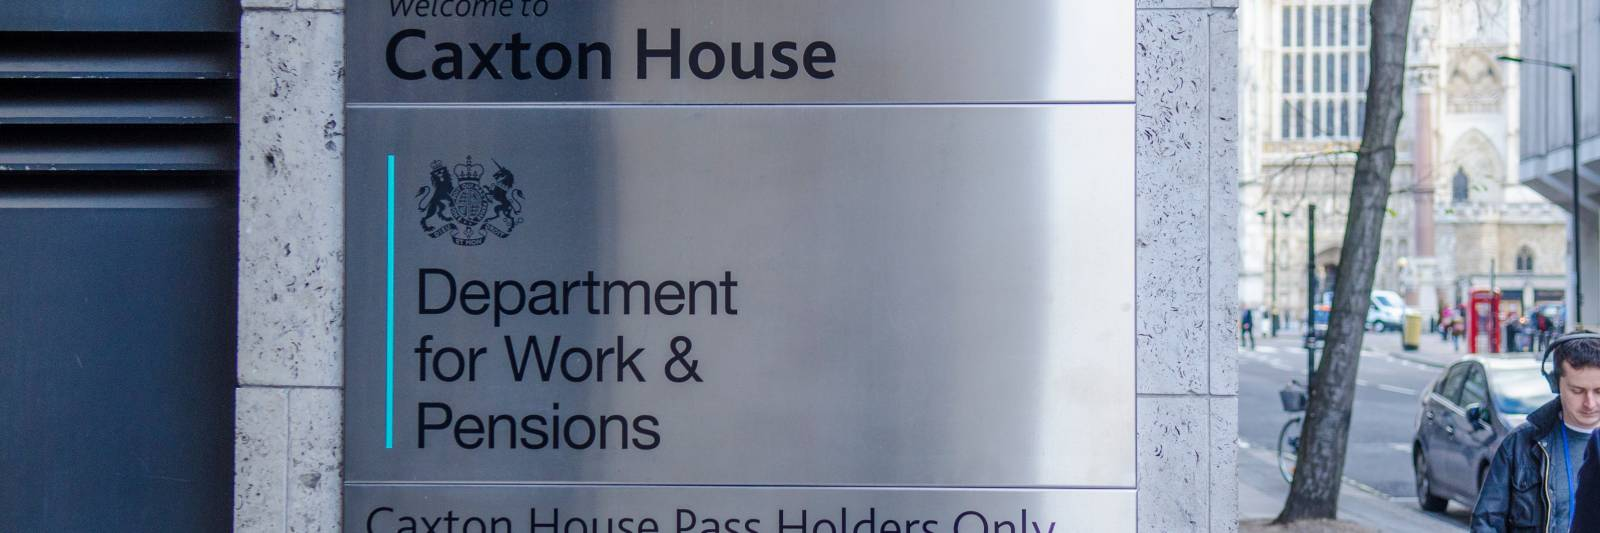 Dwp Exposed 6,000 People's Data Online For Two Years